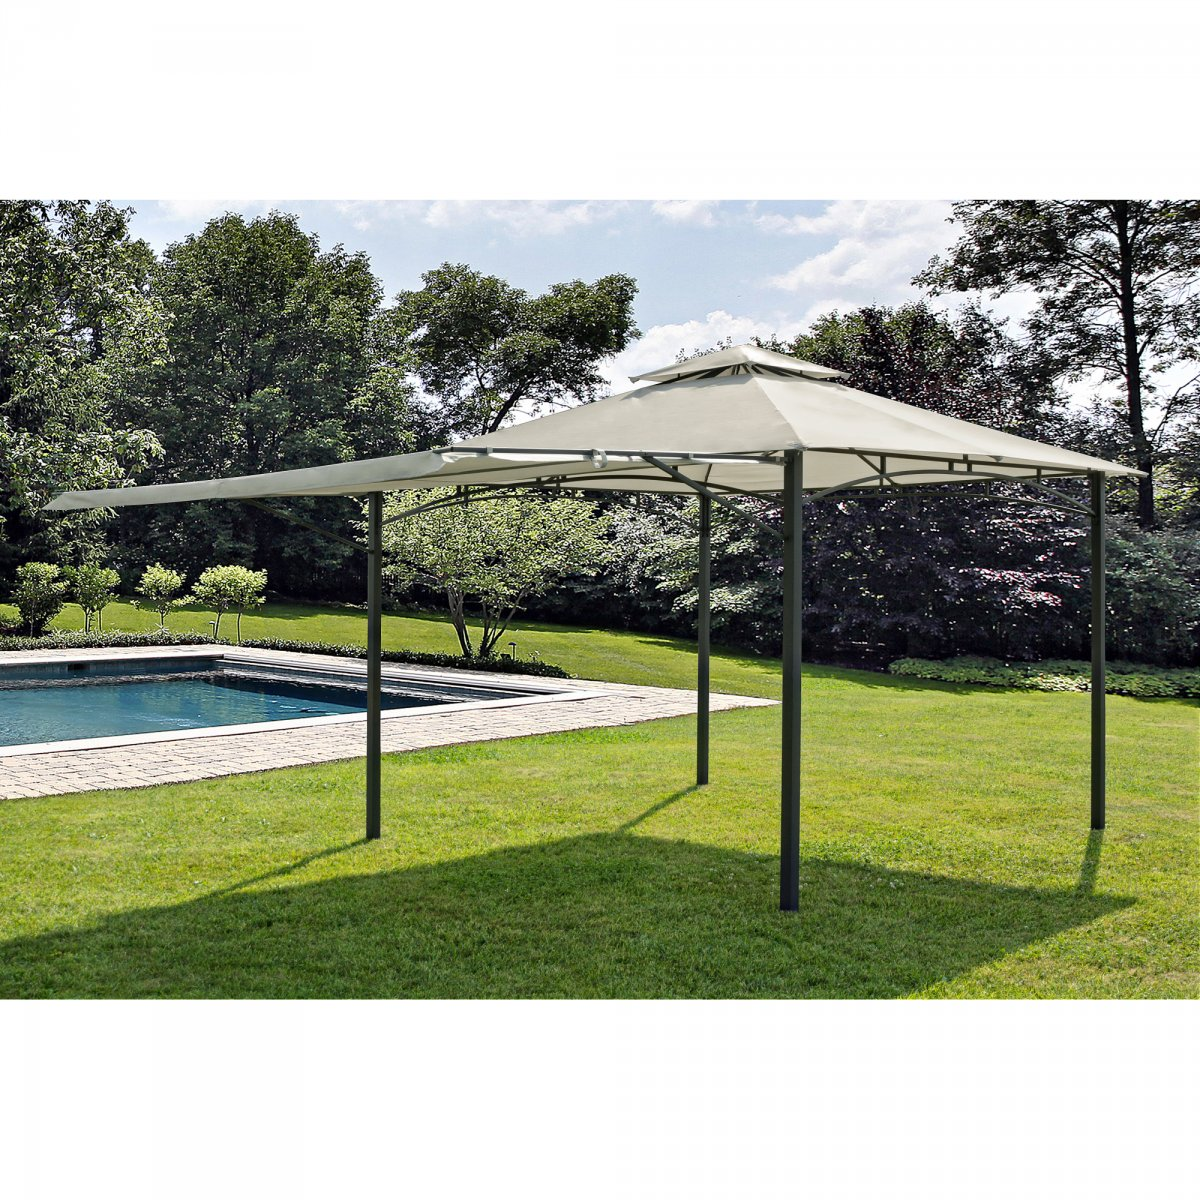 Bizzotto Yes Everyday GAZEBO COLORADO CON VERANDA 3,35 X 3,35 M